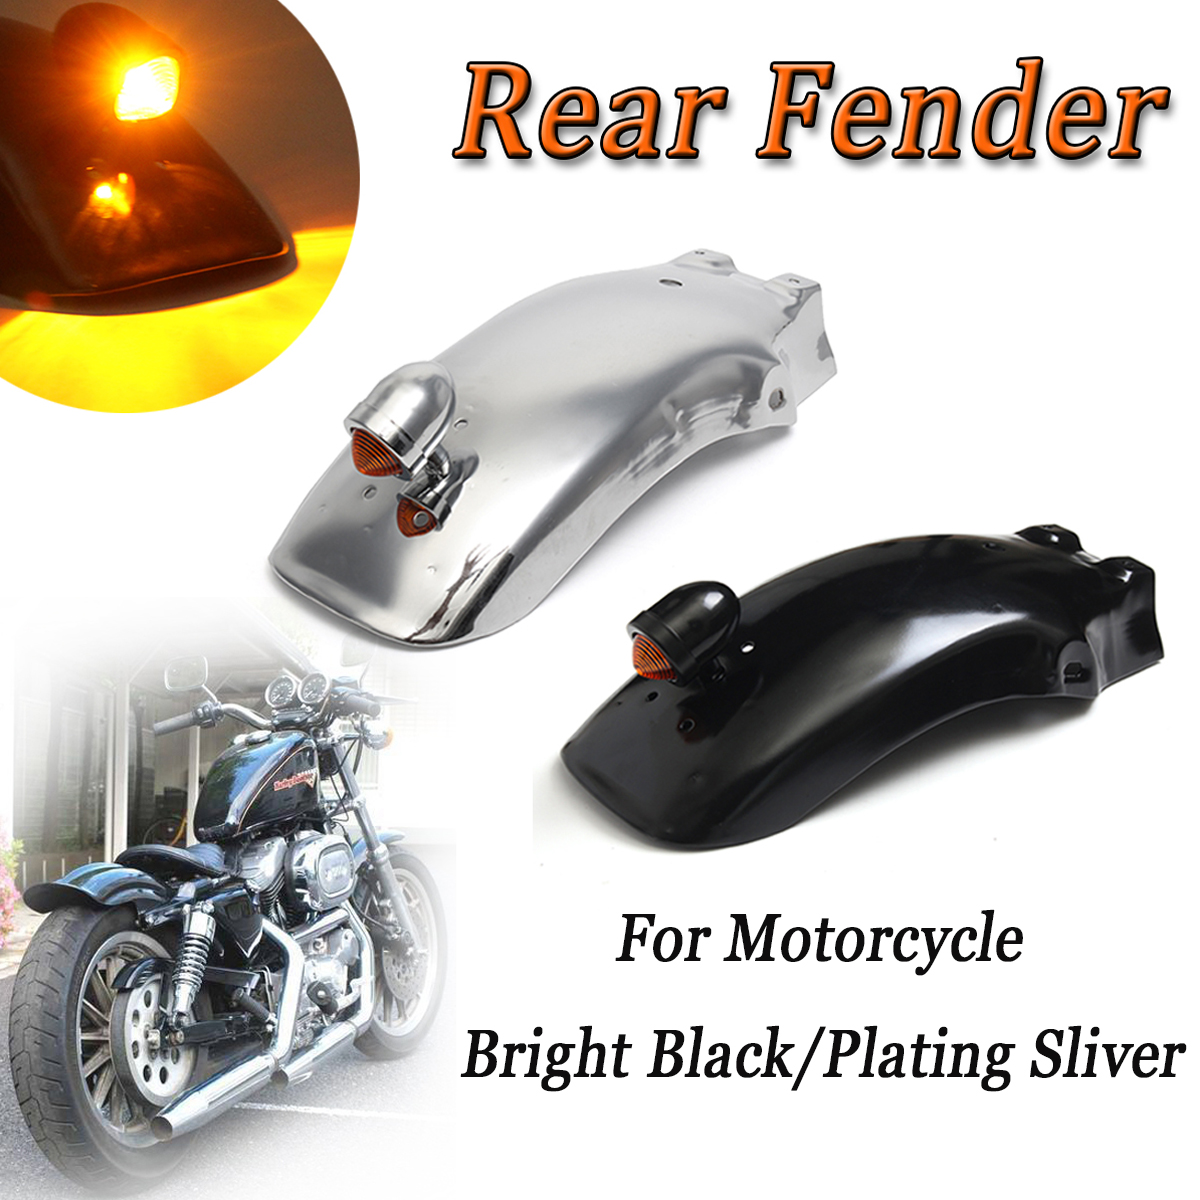 Universal motorcycle accessorie Metal Motorcycle Rear Fender Splash Guard Mud Flap Mudguard Black/Sliver with Taillight